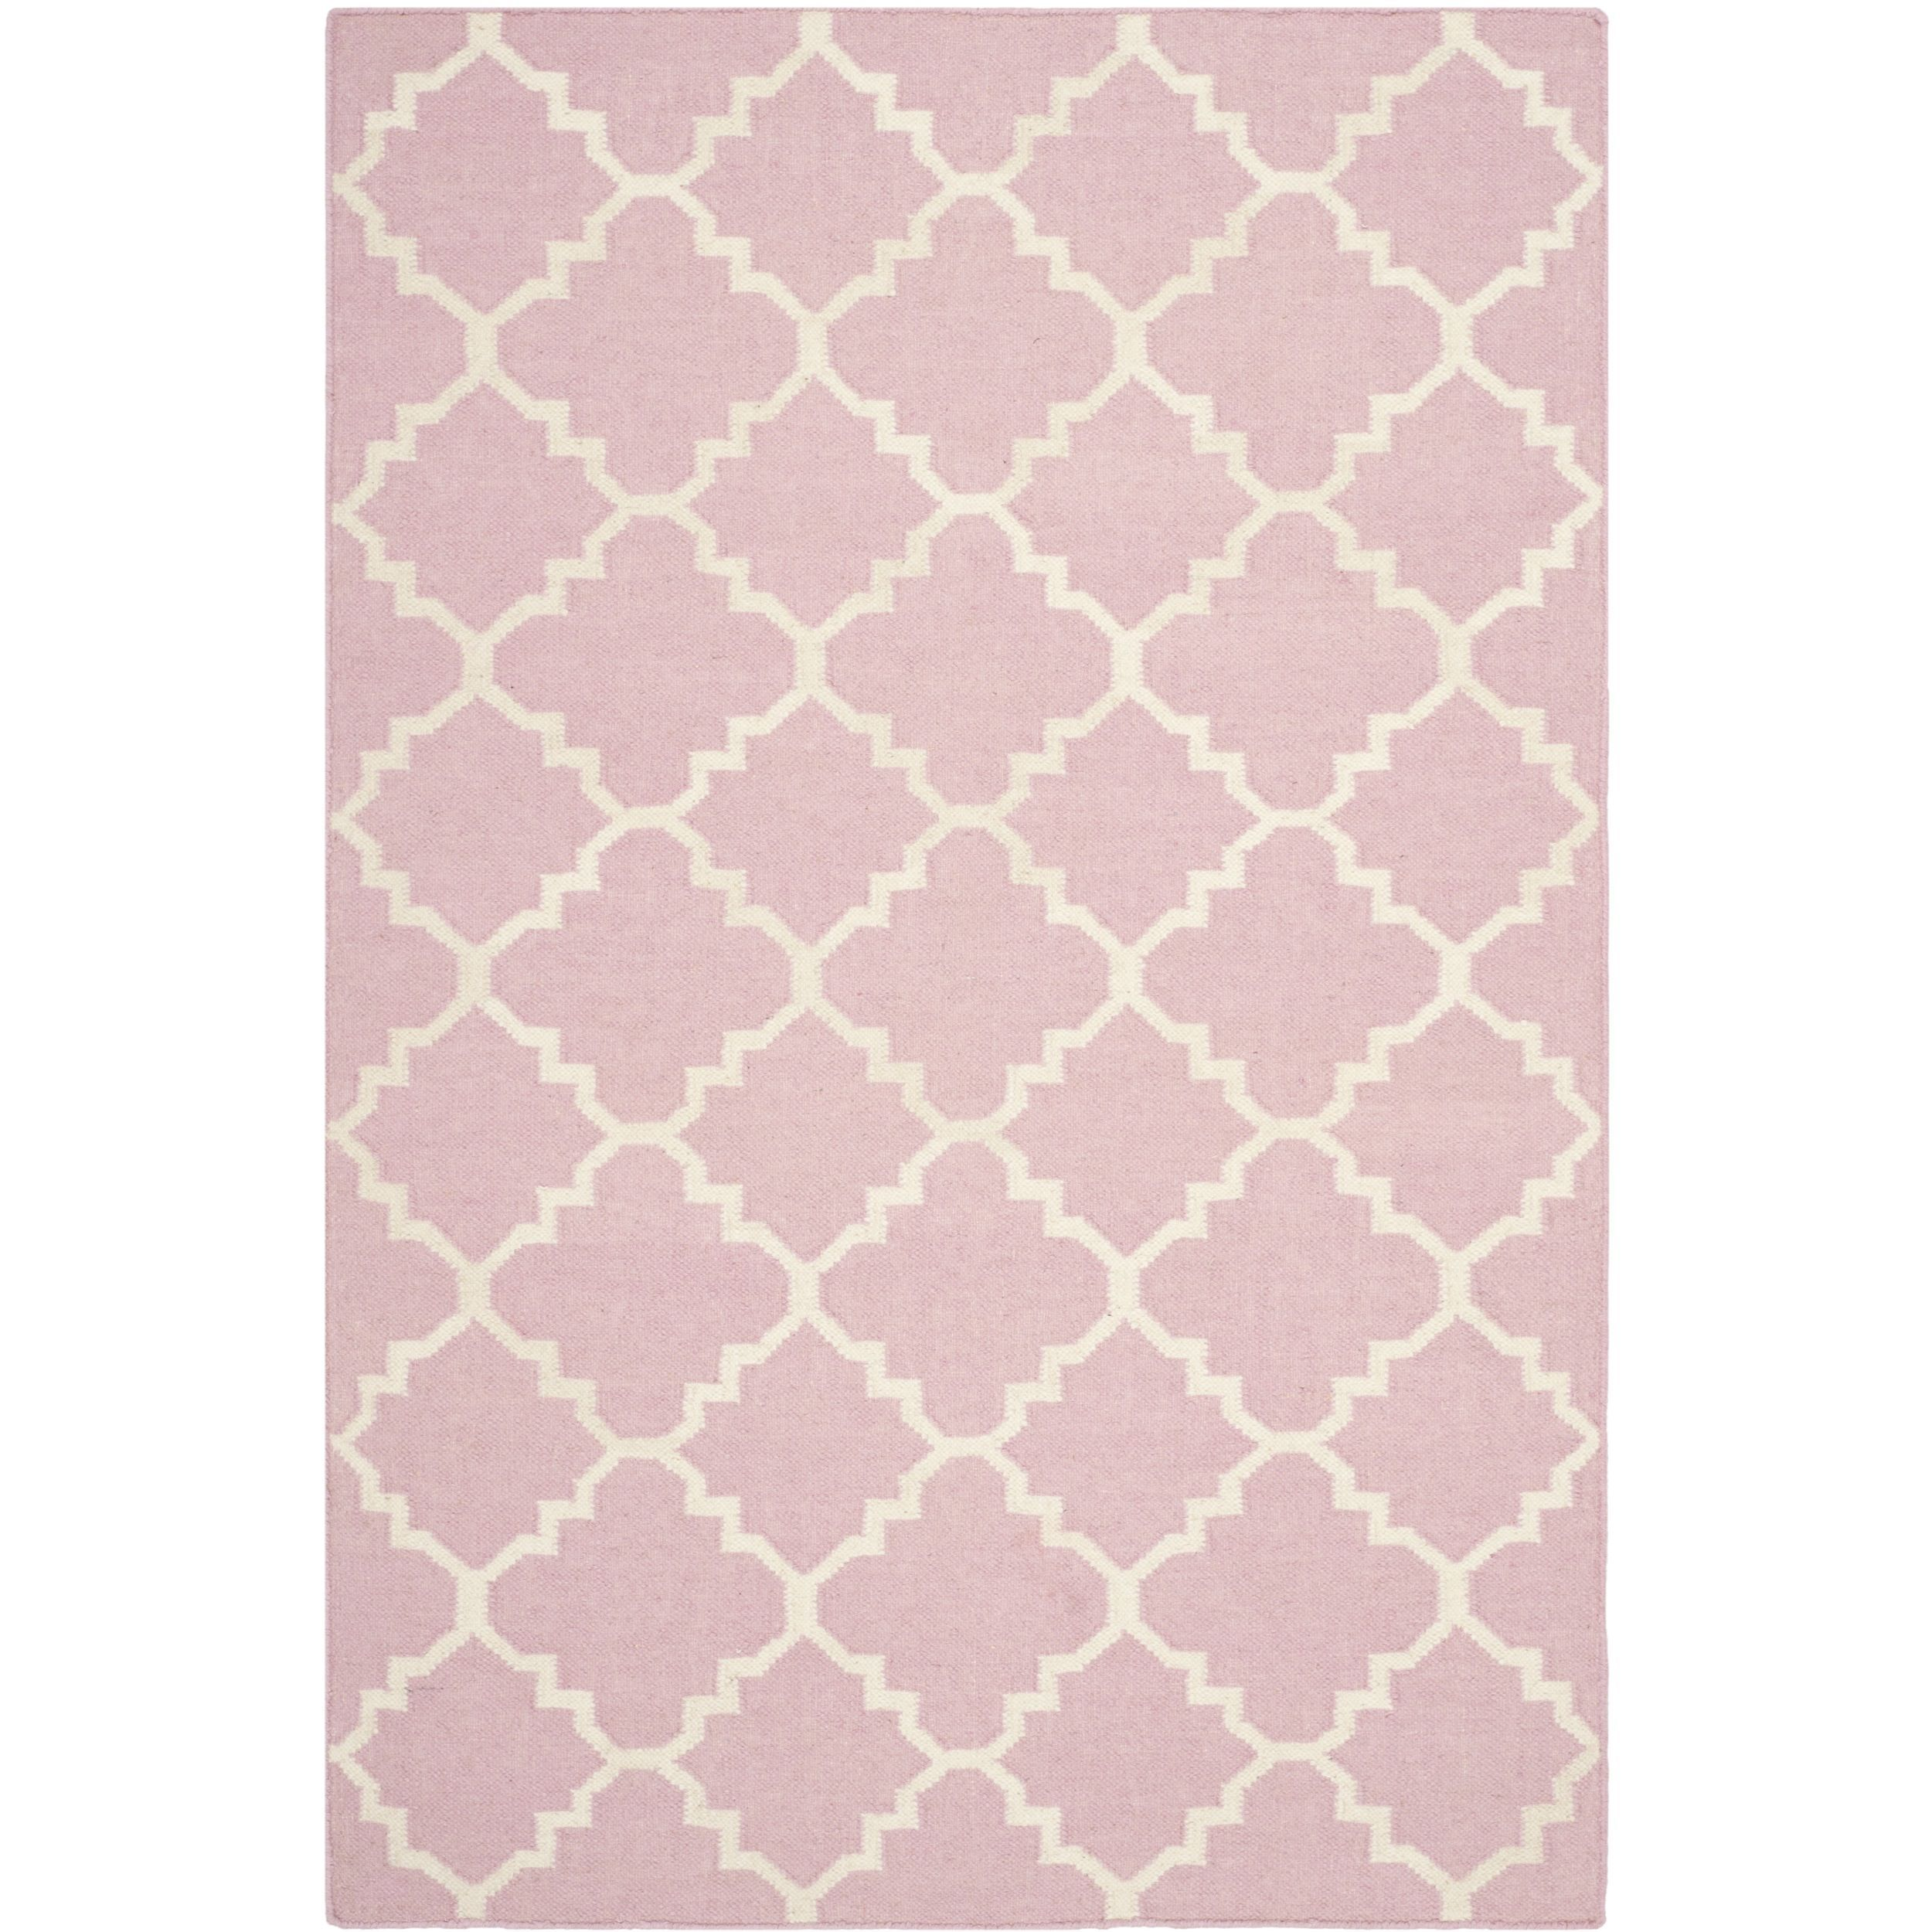 Safavieh Handwoven Moroccan Reversible Dhurrie Pink/ Ivory Wool Area Rug (6' x 9') | Overstock.com Shopping - The Best Deals on 5x8 - 6x9 Rugs